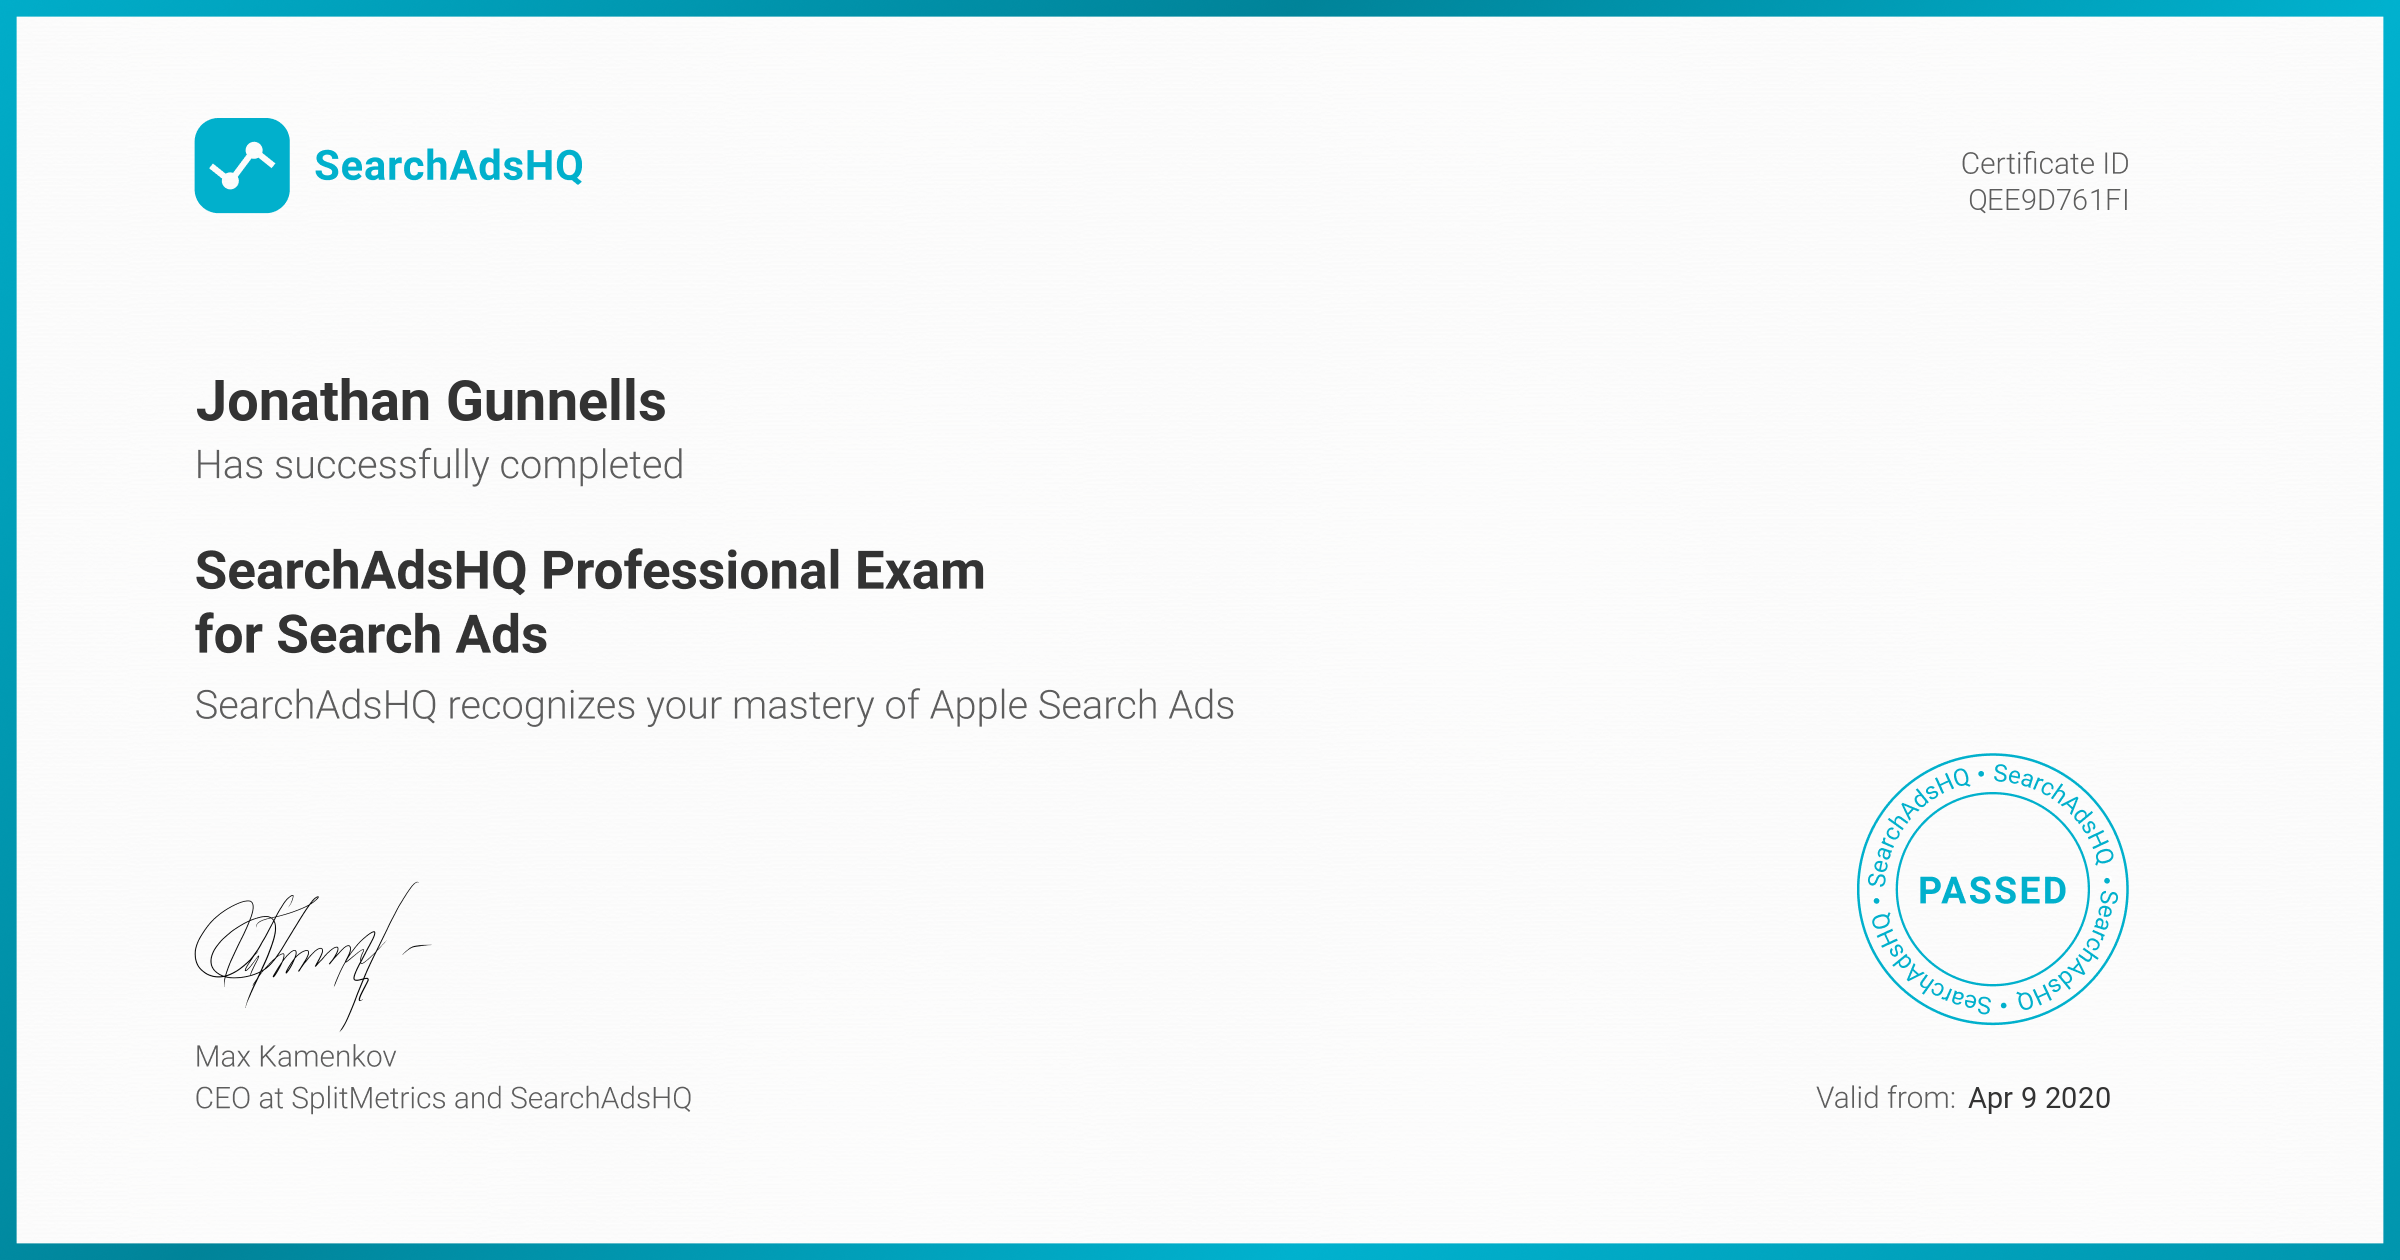 Certificate for Jonathan Gunnells   SearchAdsHQ Professional Exam for Search Ads